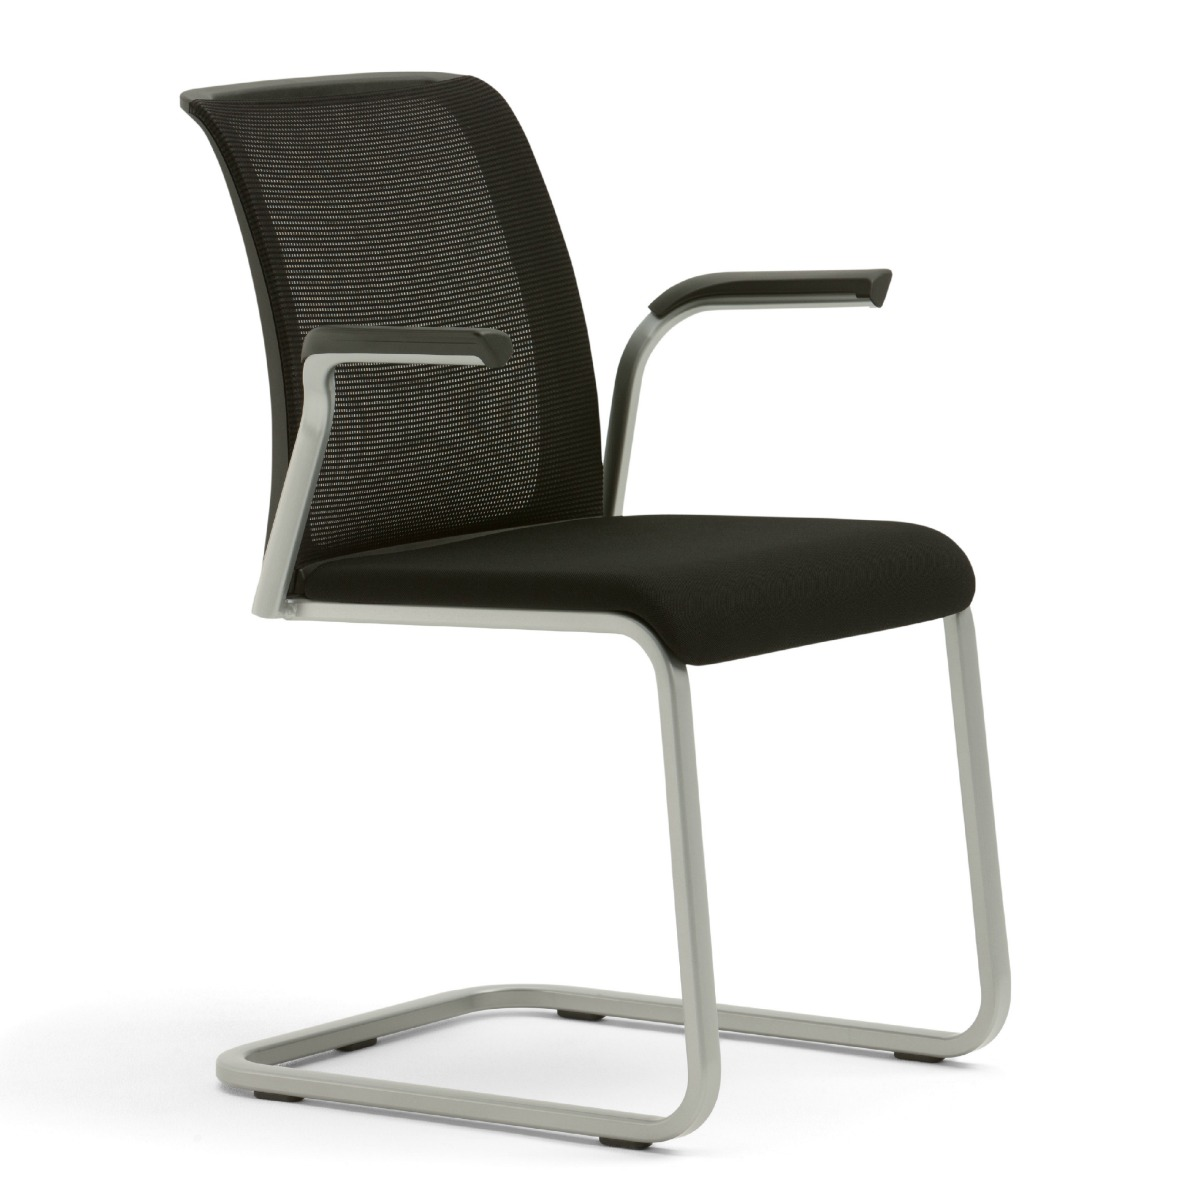 steelcase reply chair review and ottoman covers amazon shop guest mesh chairs at the human solution